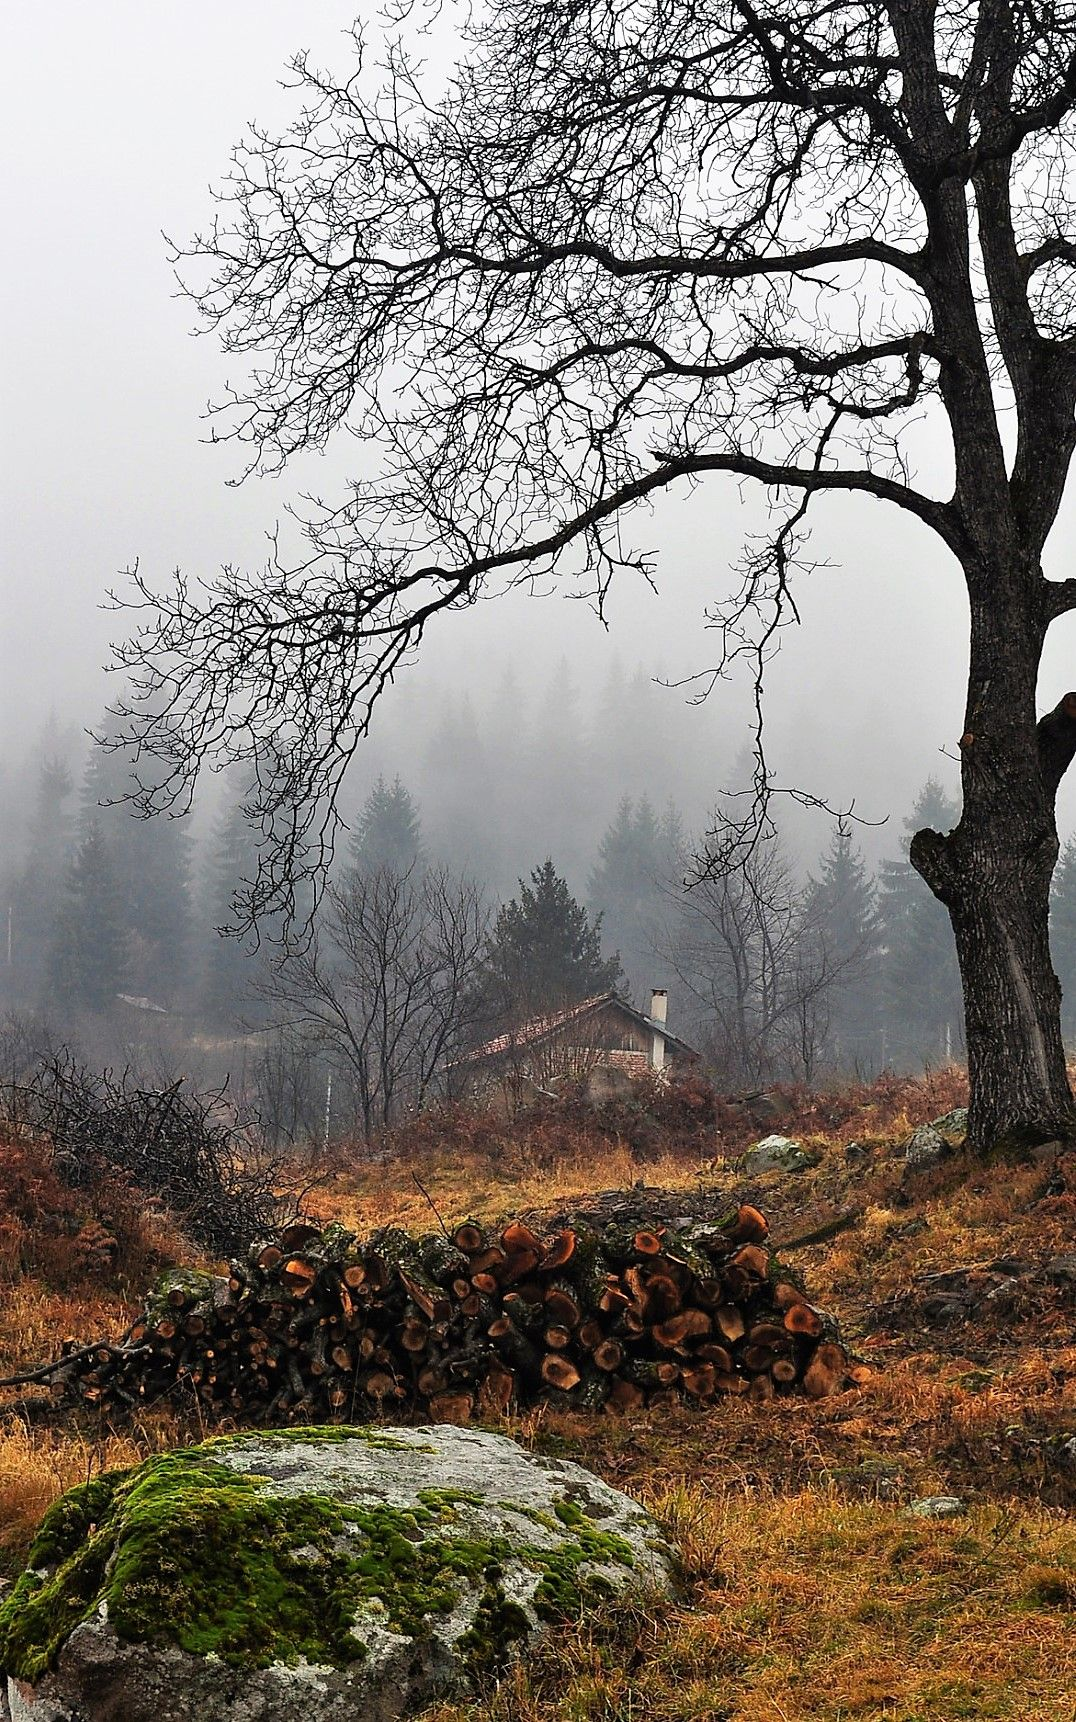 Pin By Sam Zuckfink Witz On I Just Really Like Cabins Autumn Scenes Landscape Nature